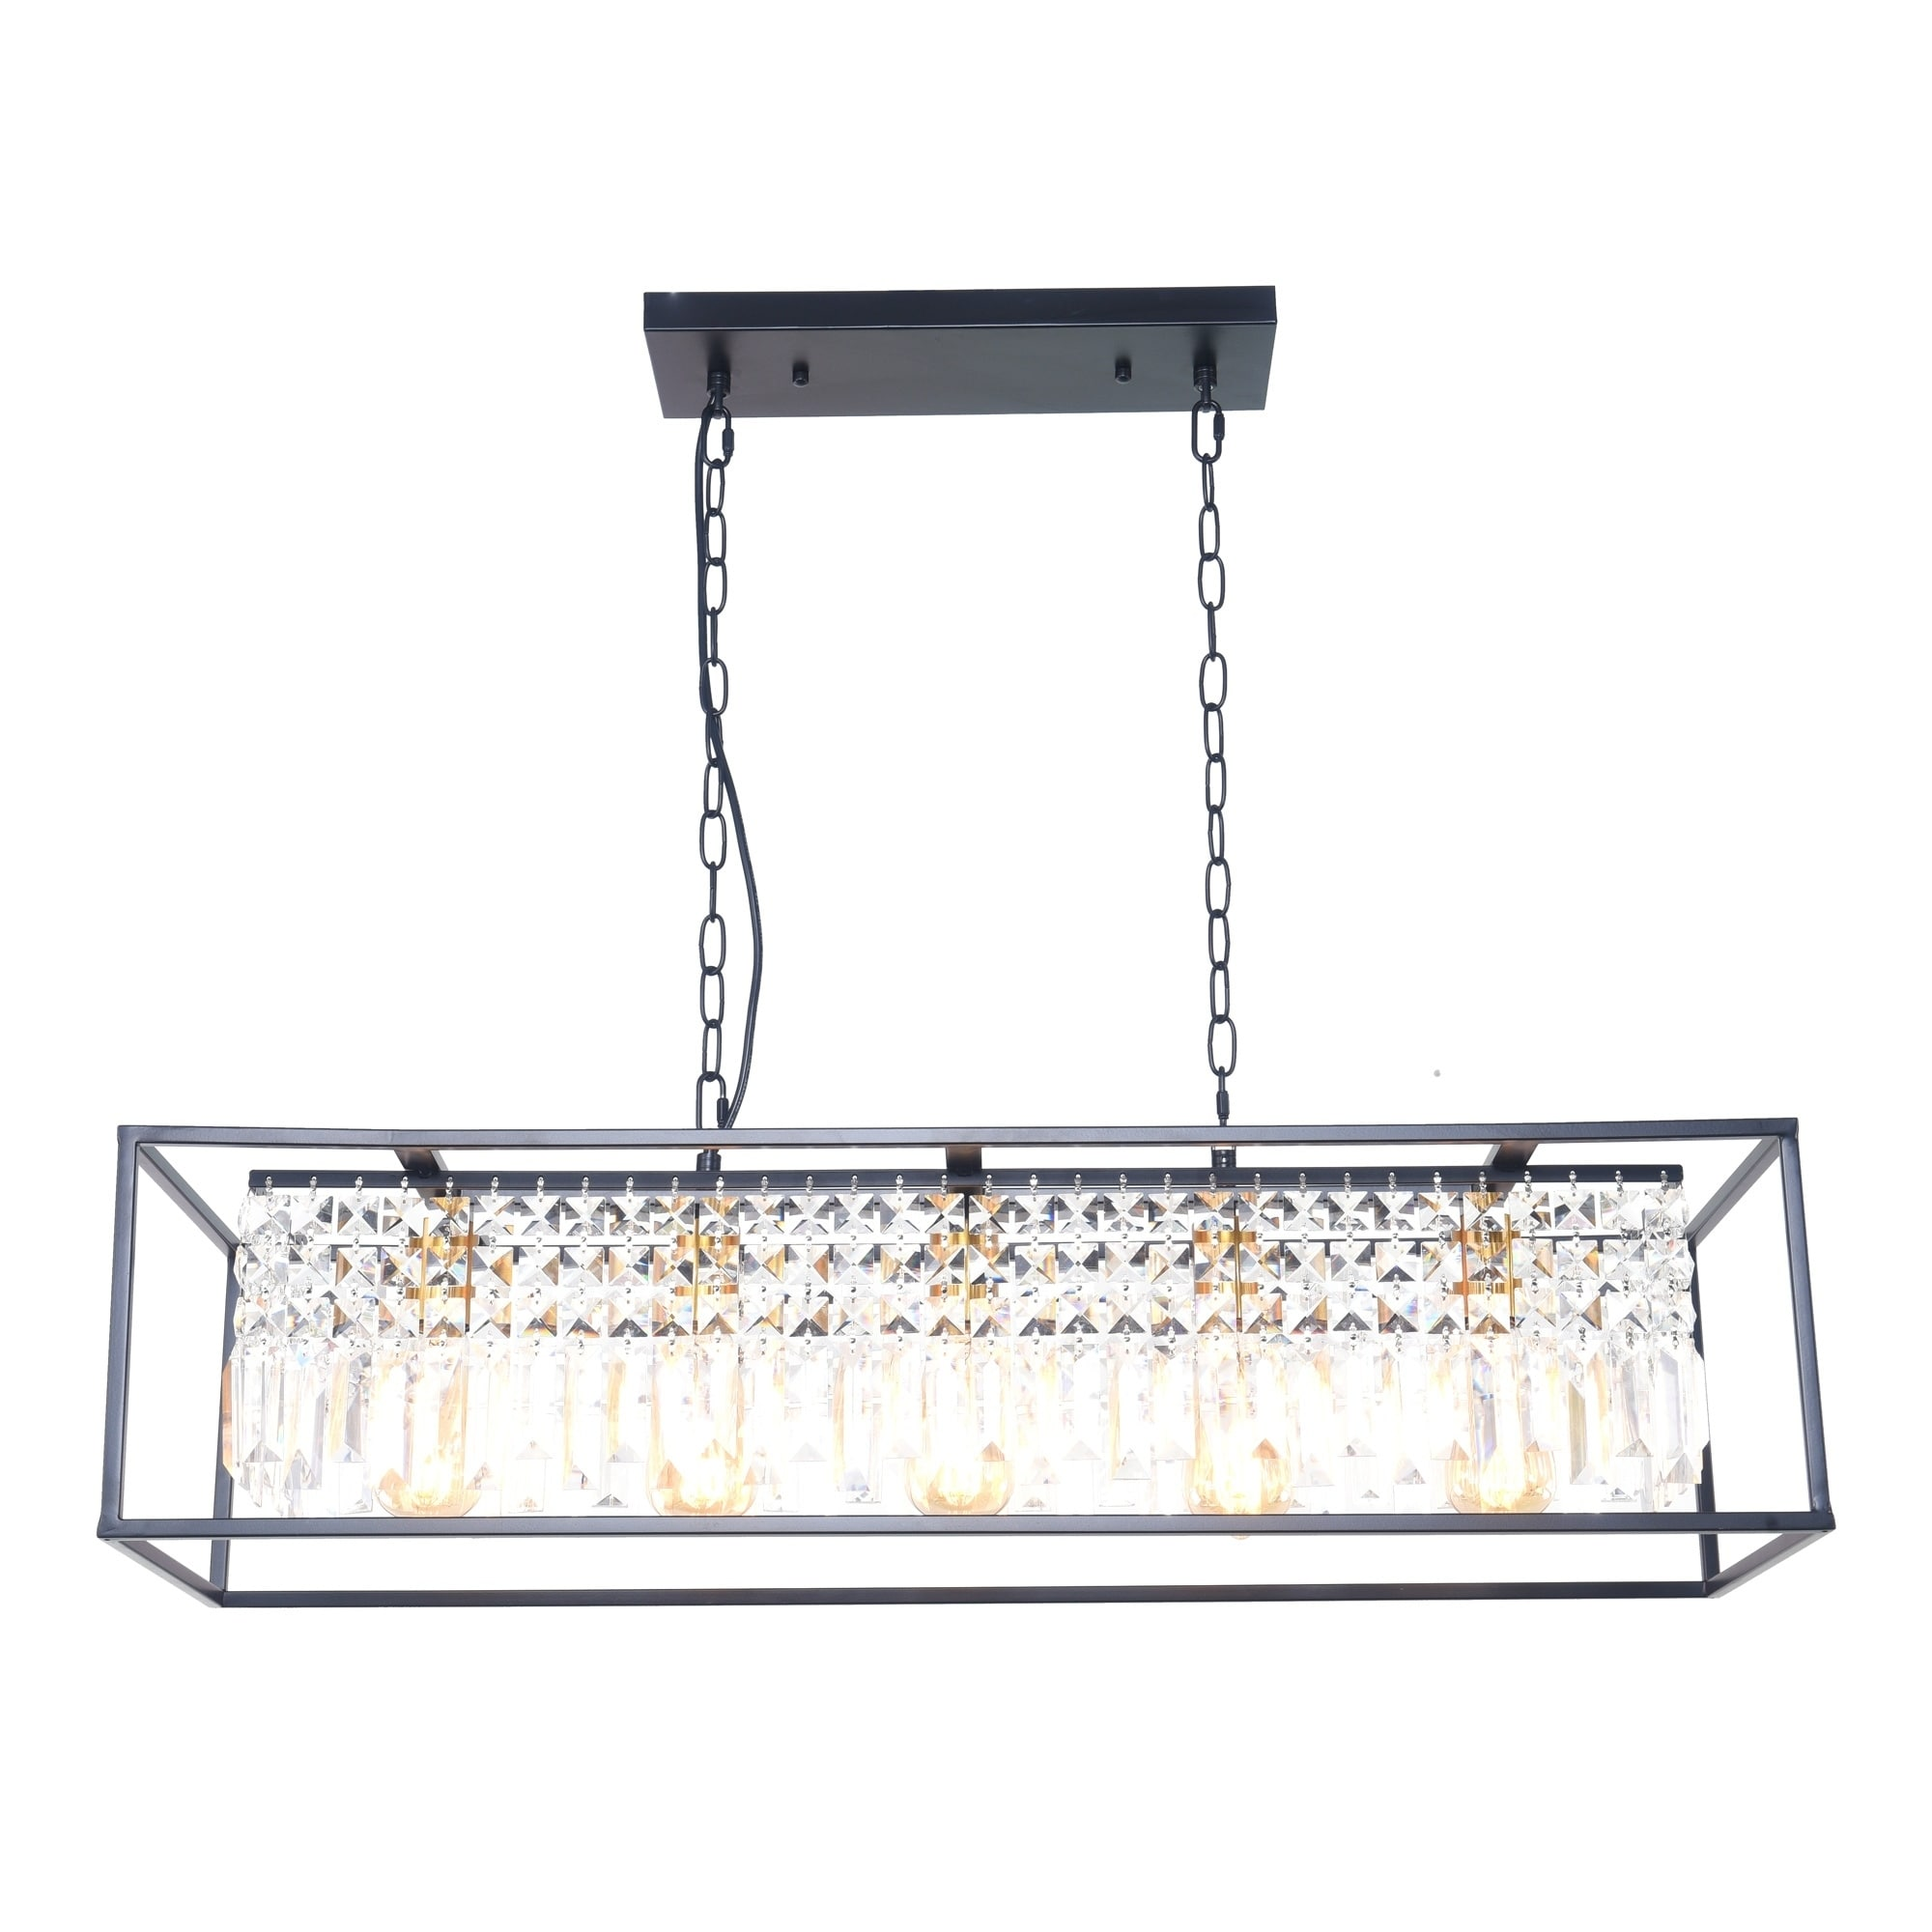 Shop Black Friday Deals On 5 Light Linear Kitchen Island Lighting Modern Crystal Island Light Pendant Light Fixture Black Finish With Clear Crystal Shade Overstock 30272304